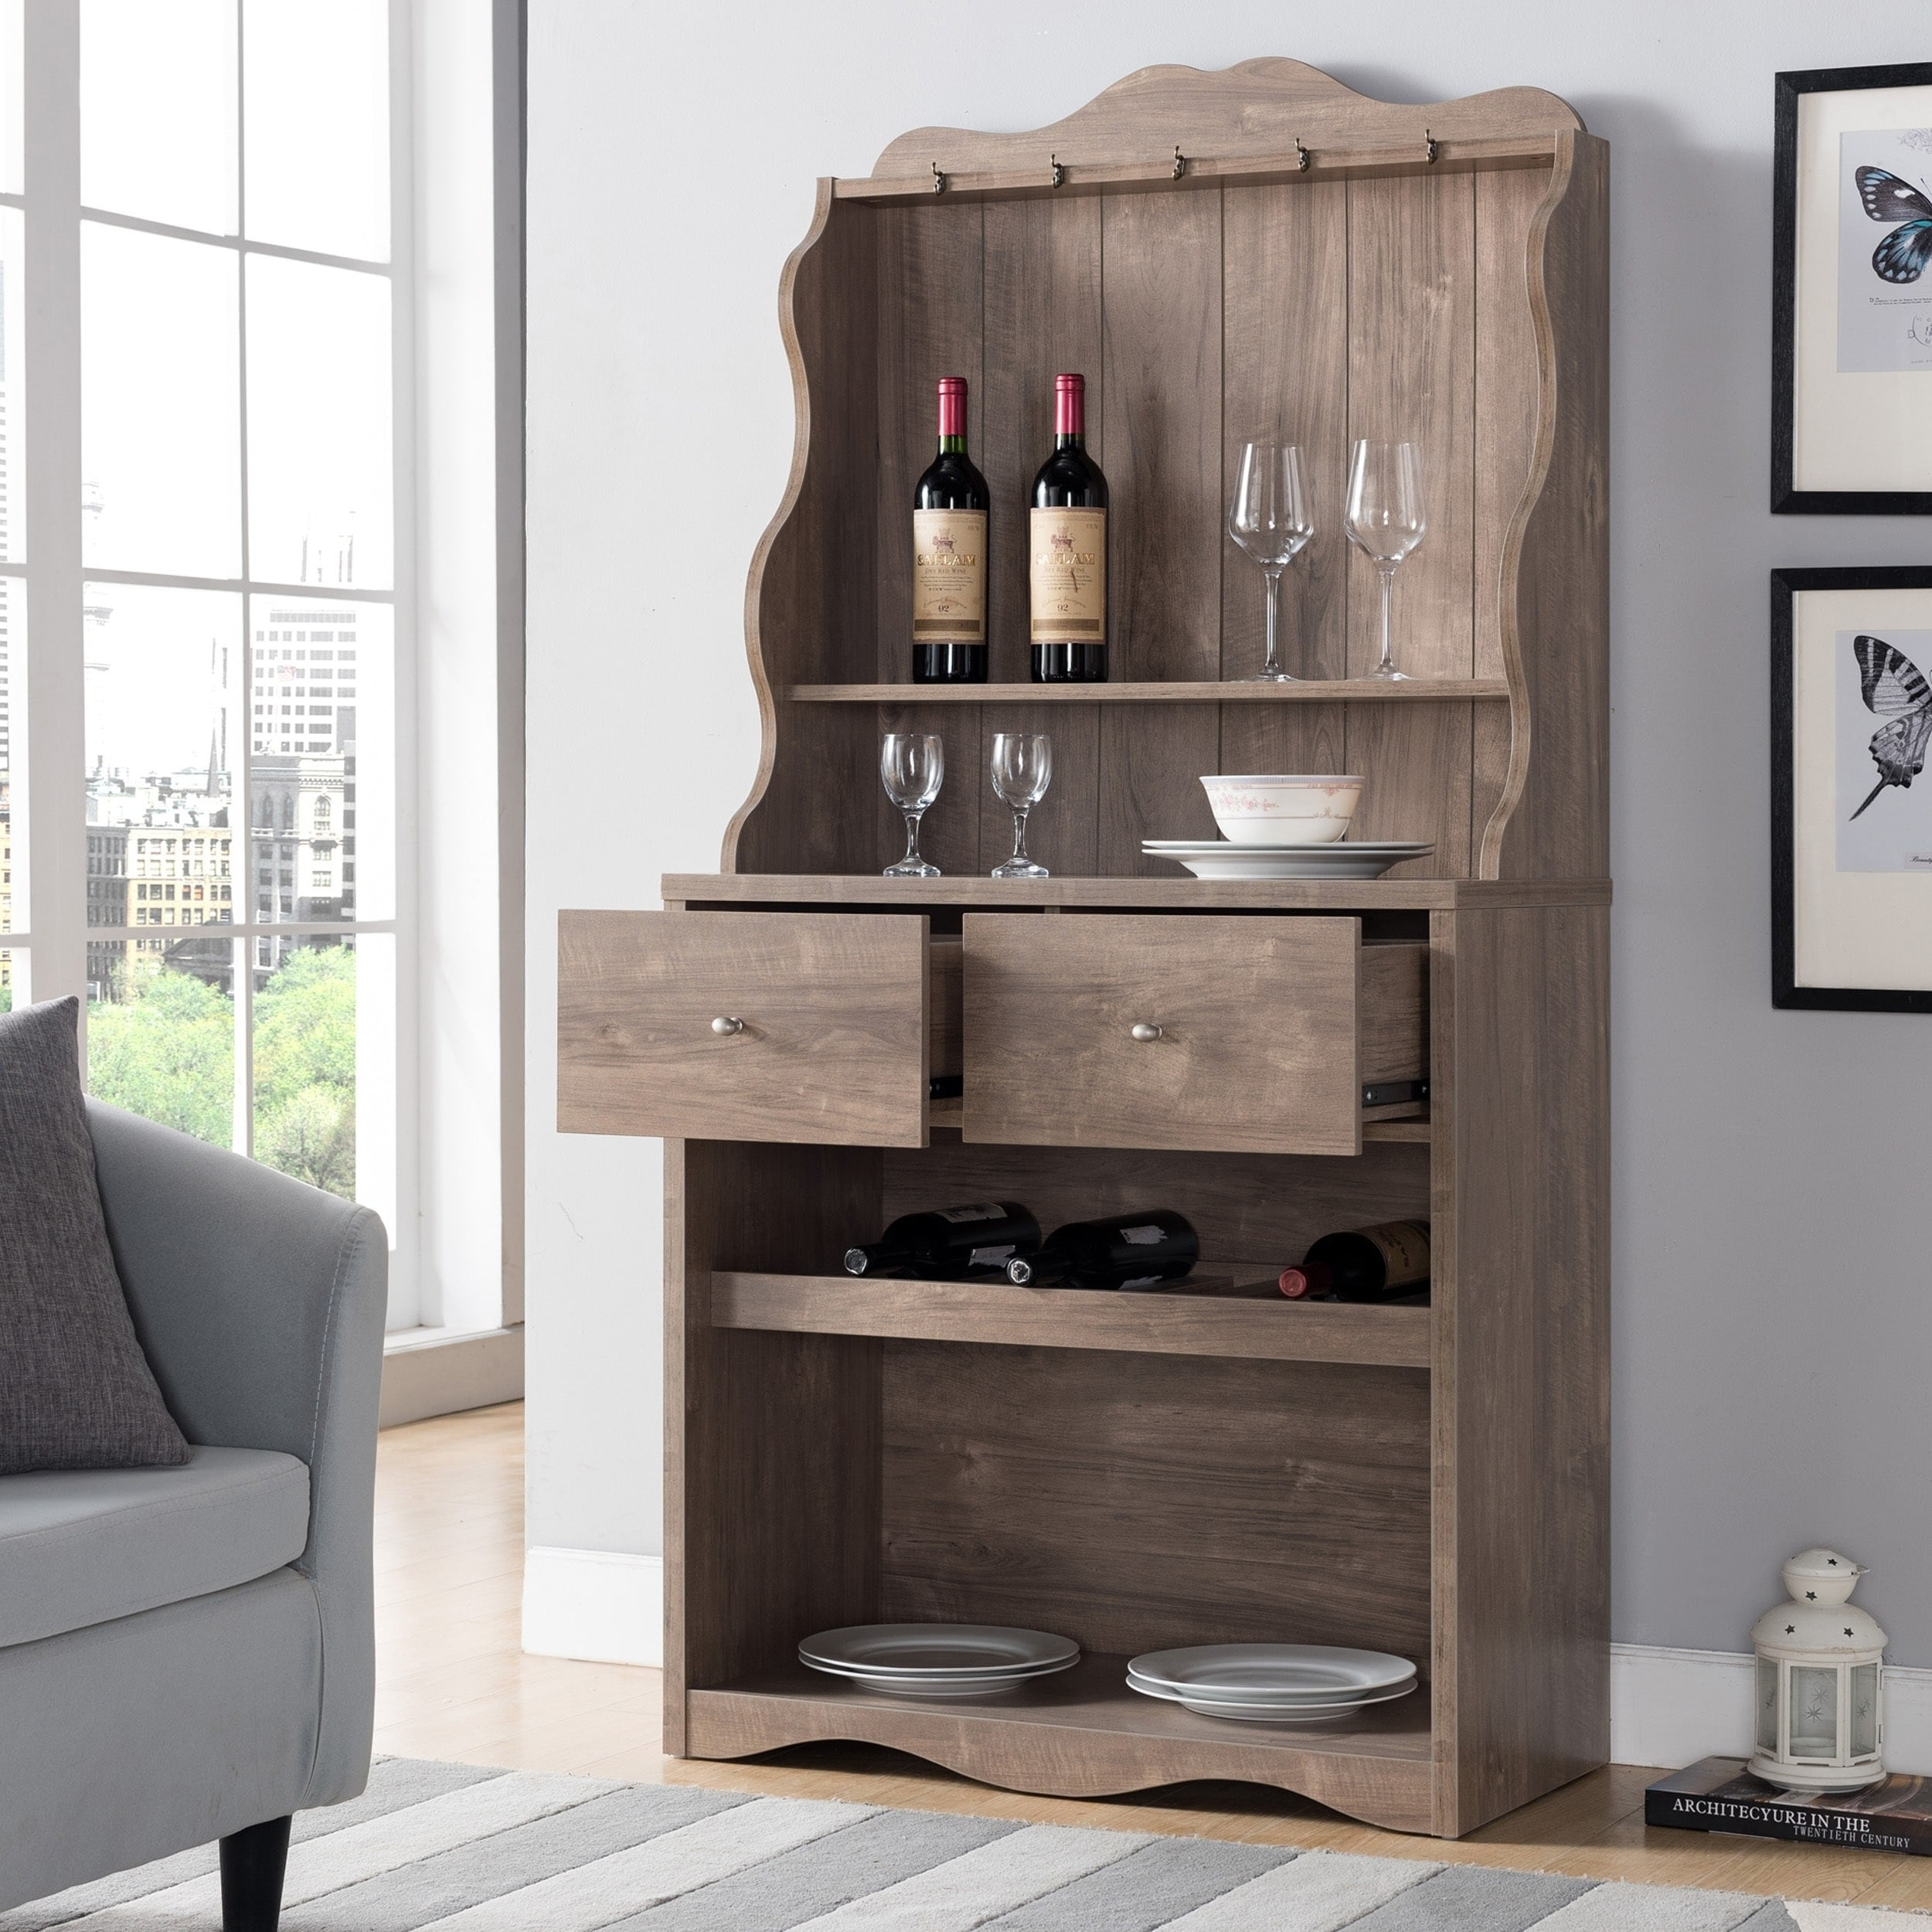 Wine Racks In Kitchen Cabinets Furniture Of America Melliers Rustic Kitchen Cabinet With Wine